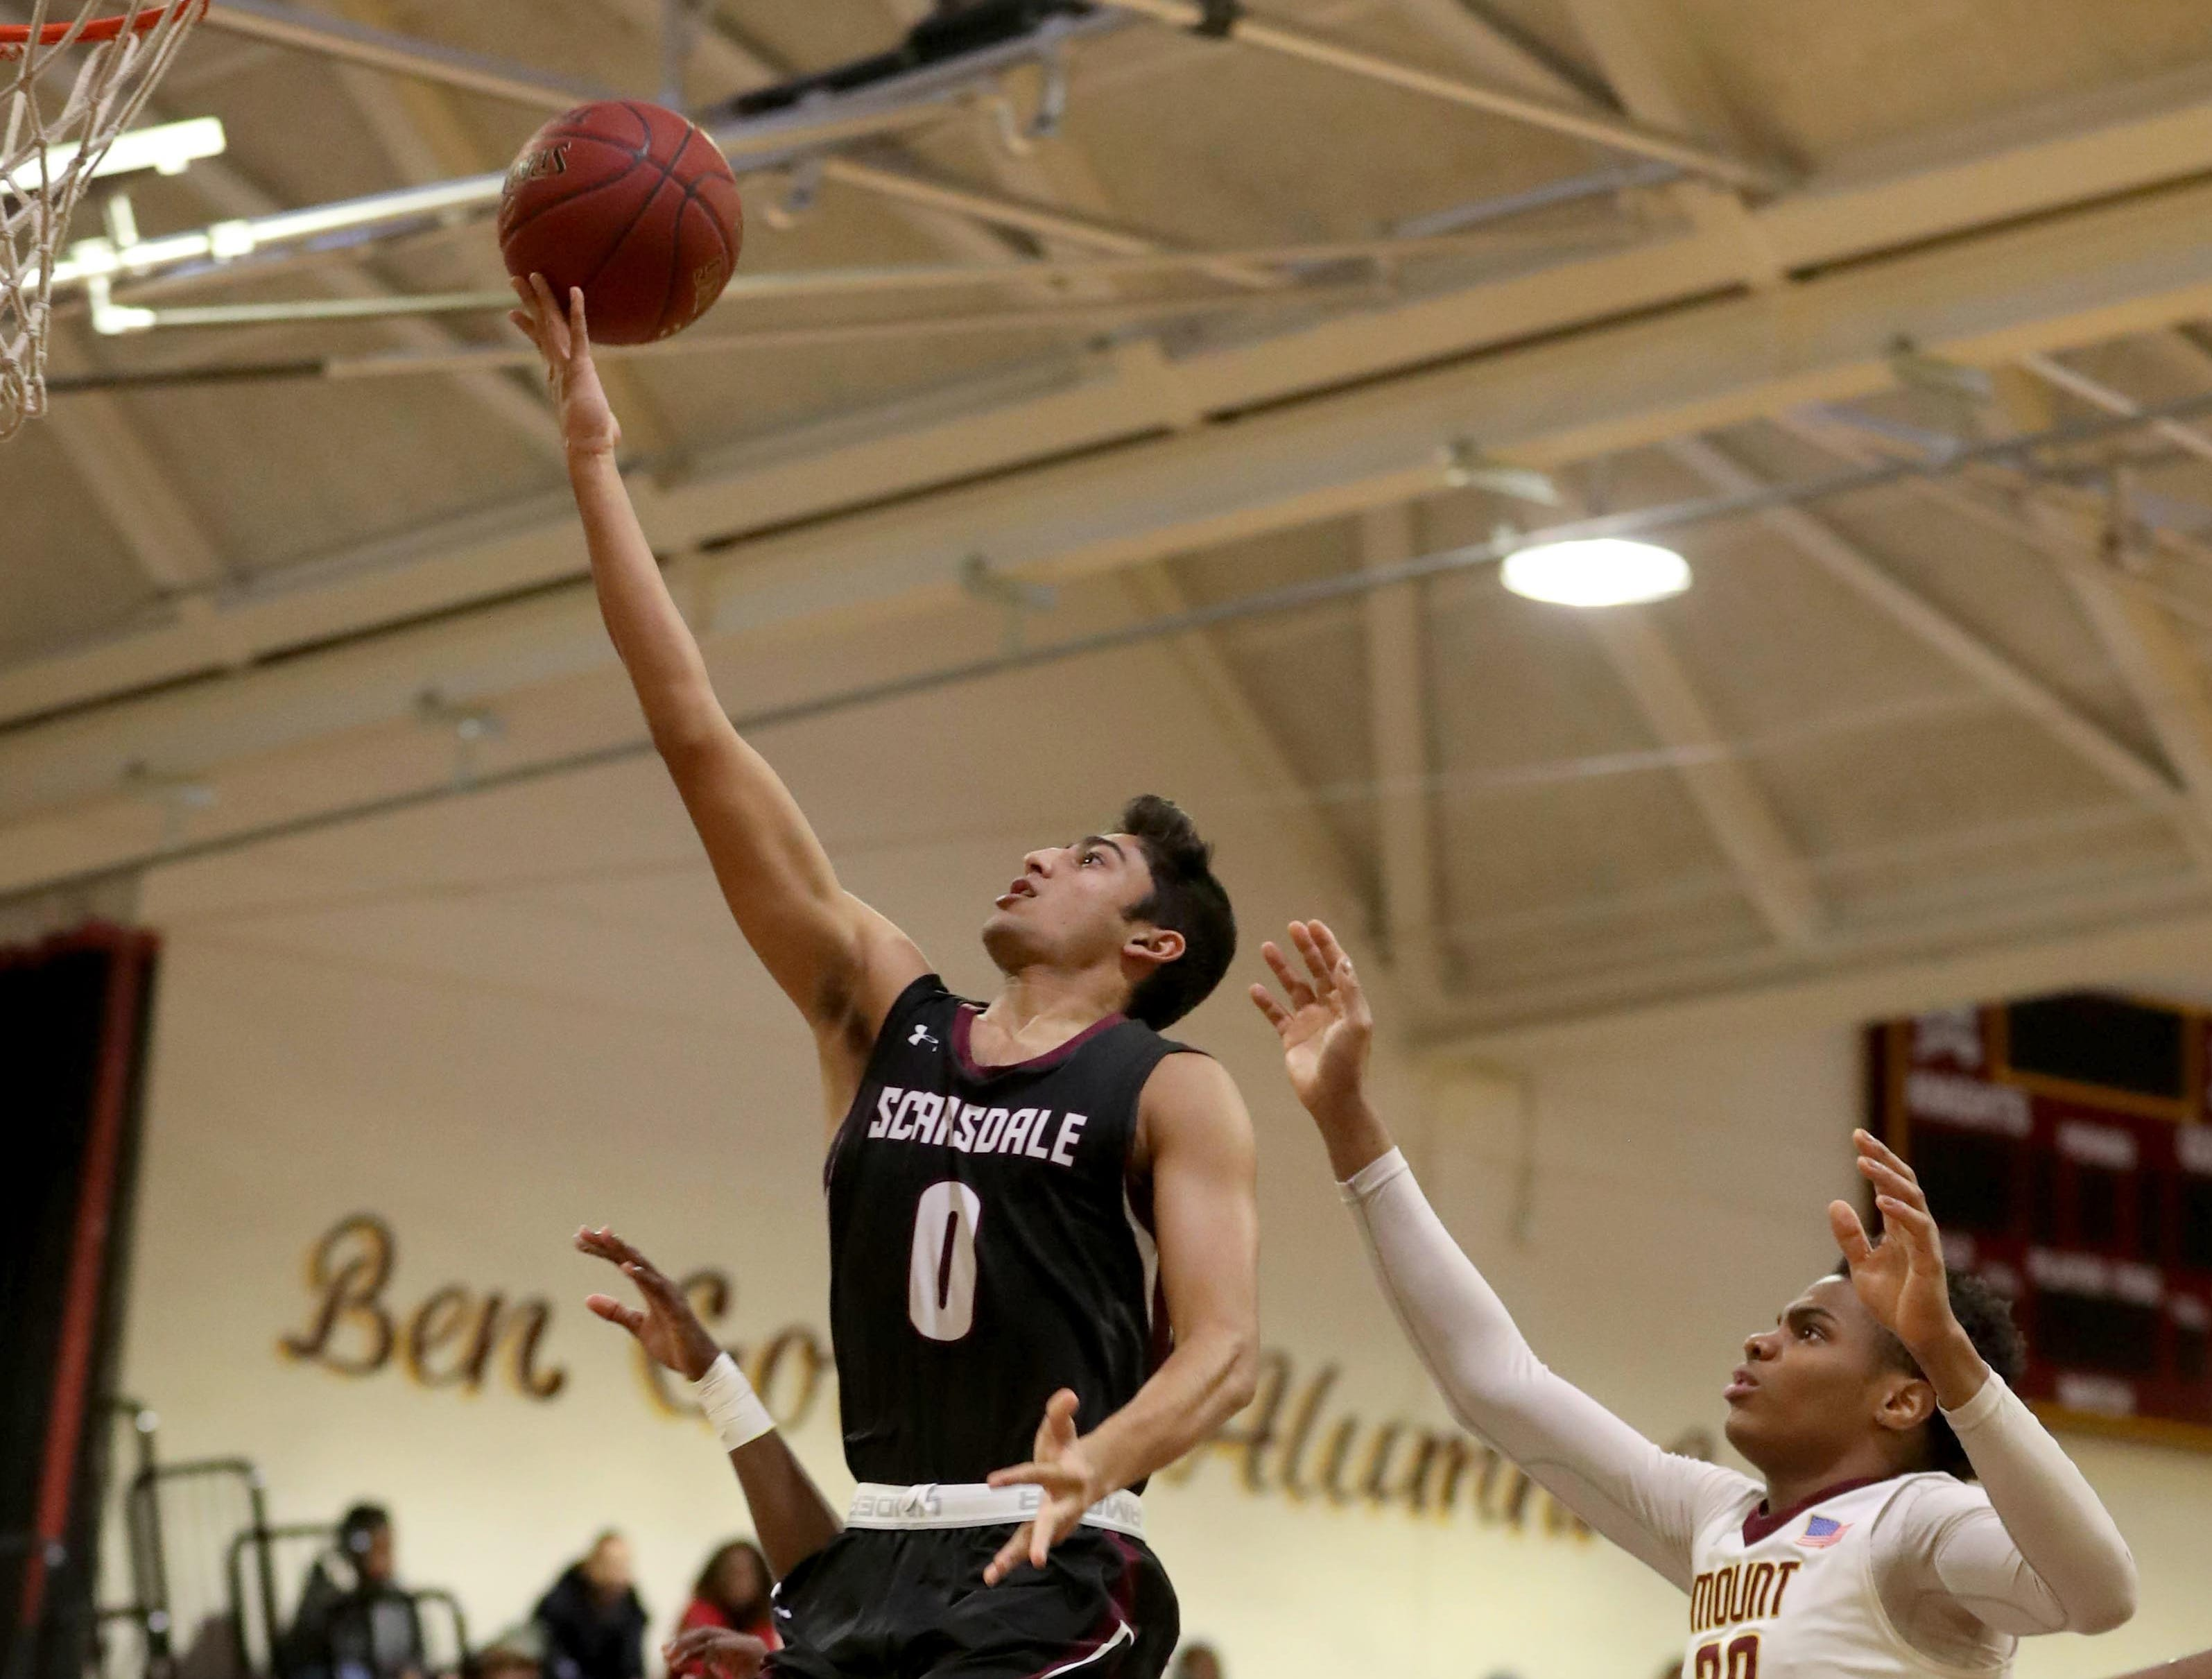 Jayshen Saigal of Scarsdale gets past Troy Hupstead of Mount Vernon during a varsity basketball game at Mount Vernon High School Jan. 9, 2019. Mount Vernon defeated Scarsdale 70-54.